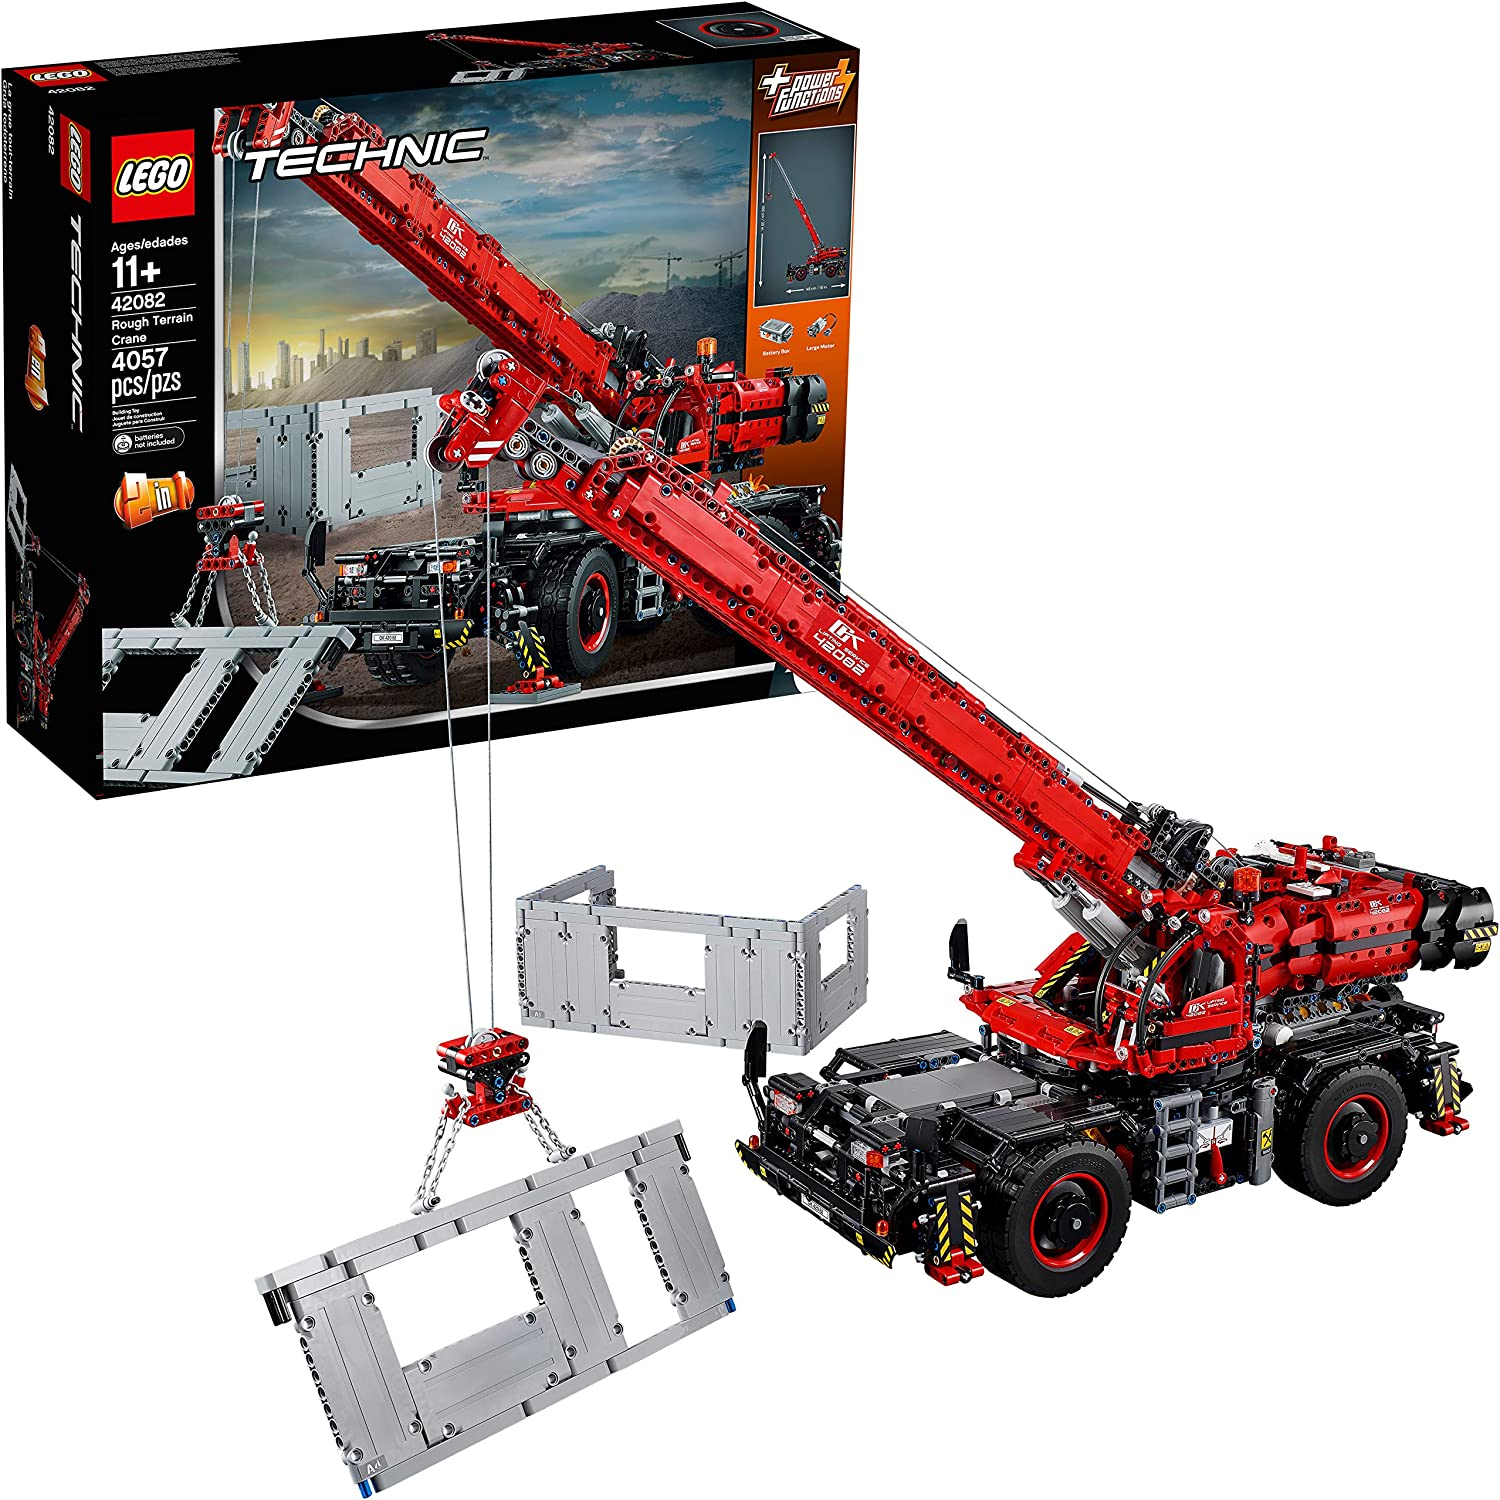 Top 7 Best LEGO Crane Sets Reviews in 2020 1